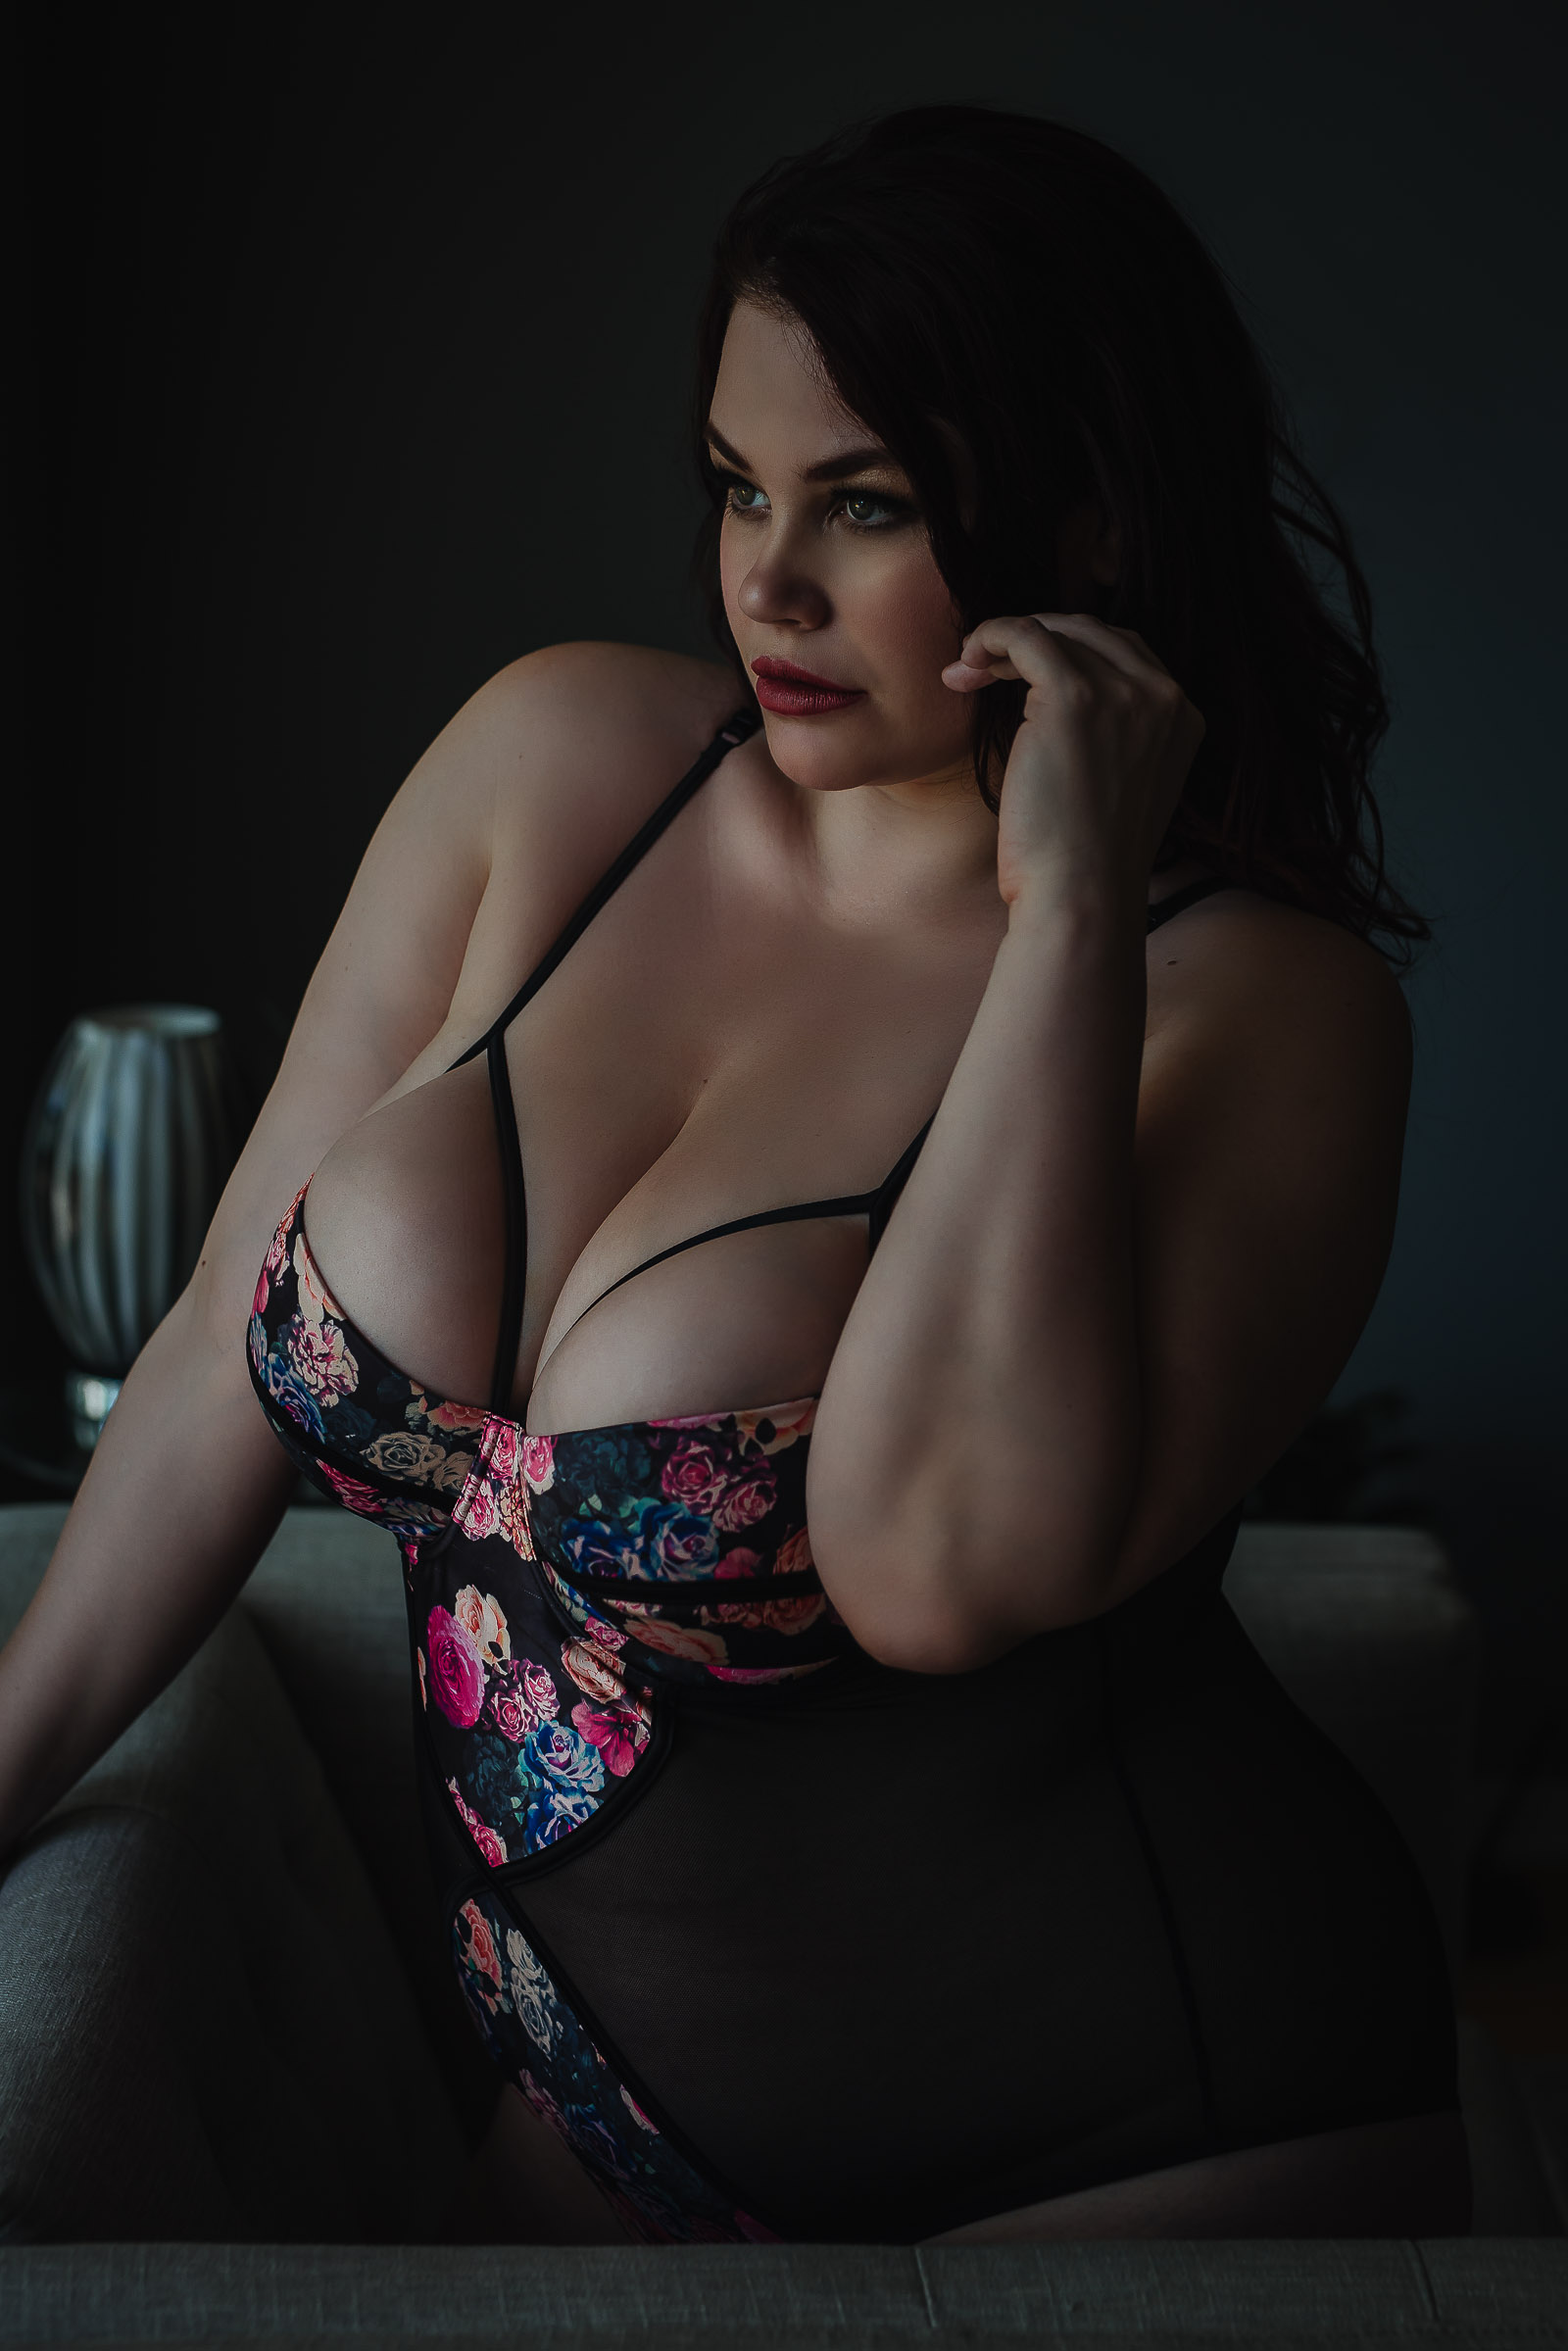 Picture of beautiful curvy brunette wearing bodysuit taken at Toronto boudoir photography studio